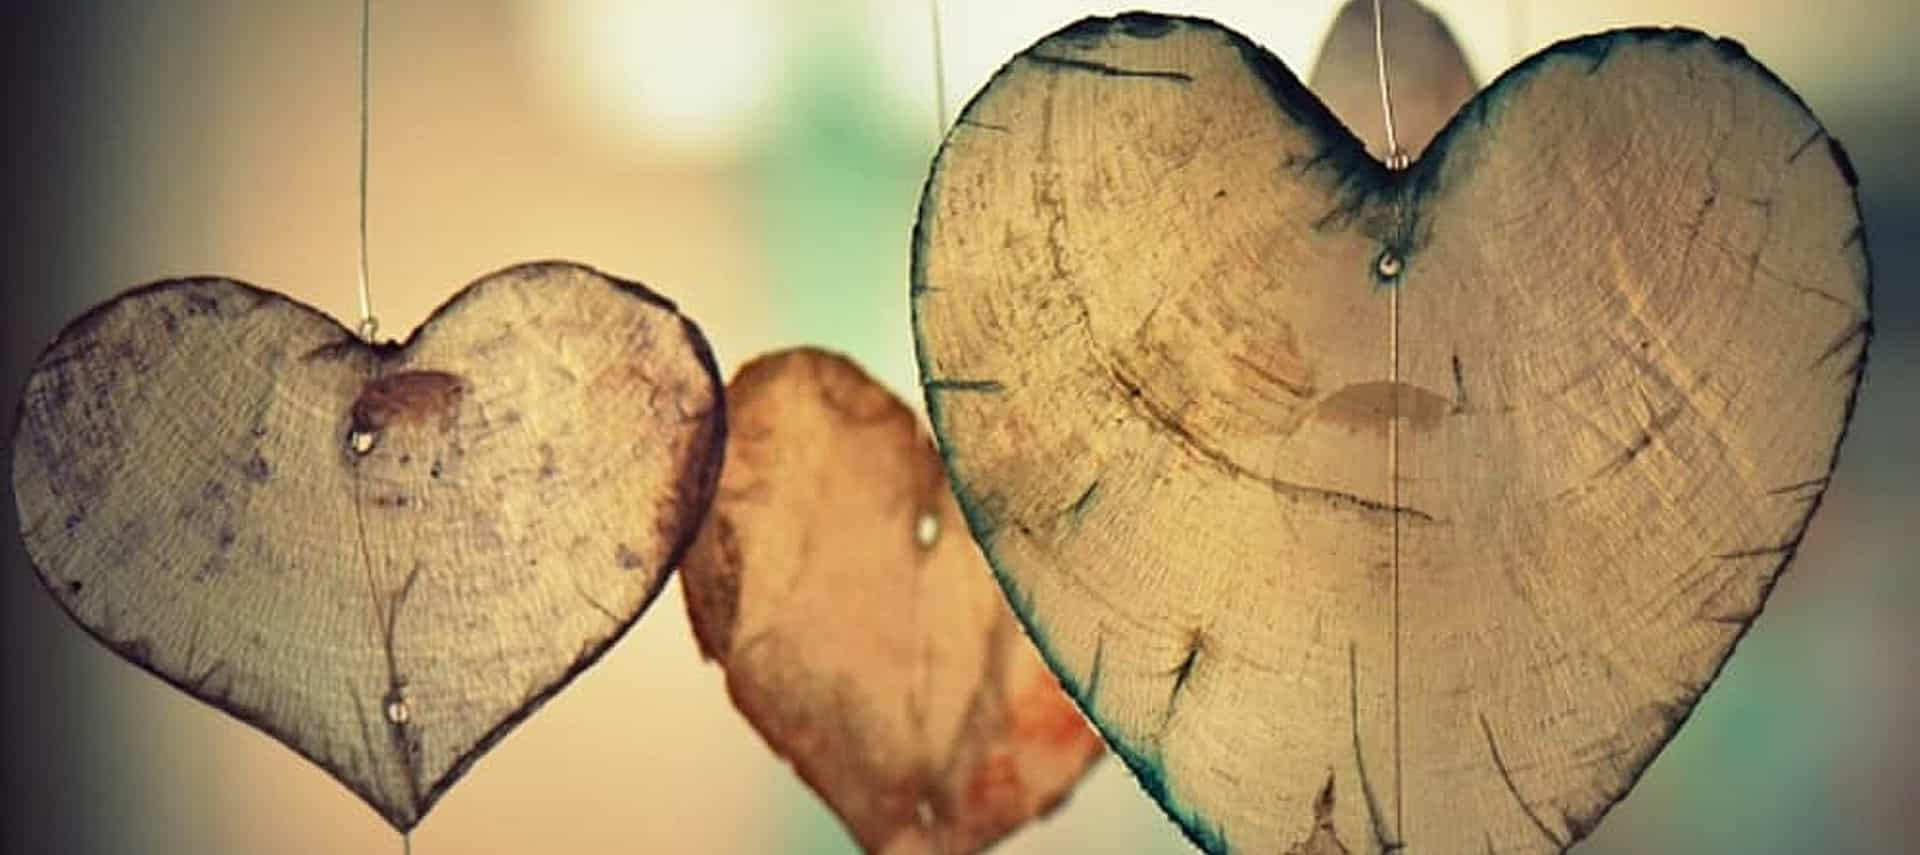 Three thinly sliced pieces of wood in heart shapes hanging by a thin silver wire.